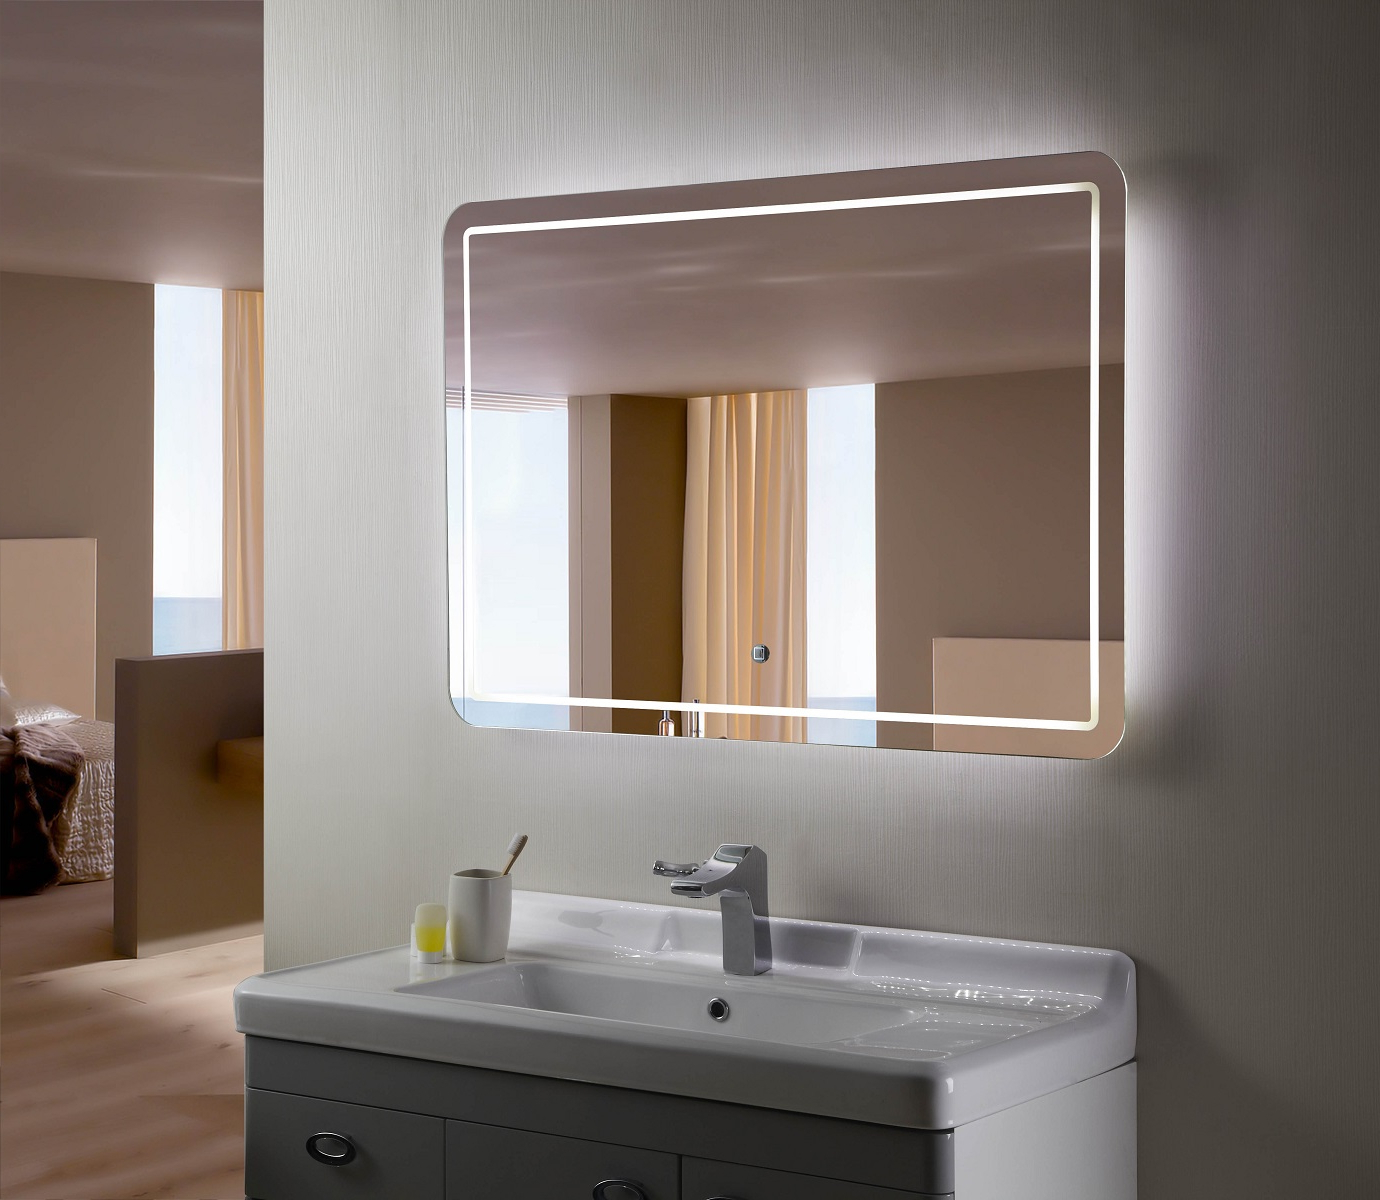 Popular Bellagio Ii Backlit Mirror Led Bathroom Mirror Horizontal With Regard To Illuminated Wall Mirrors For Bathroom (Gallery 6 of 20)